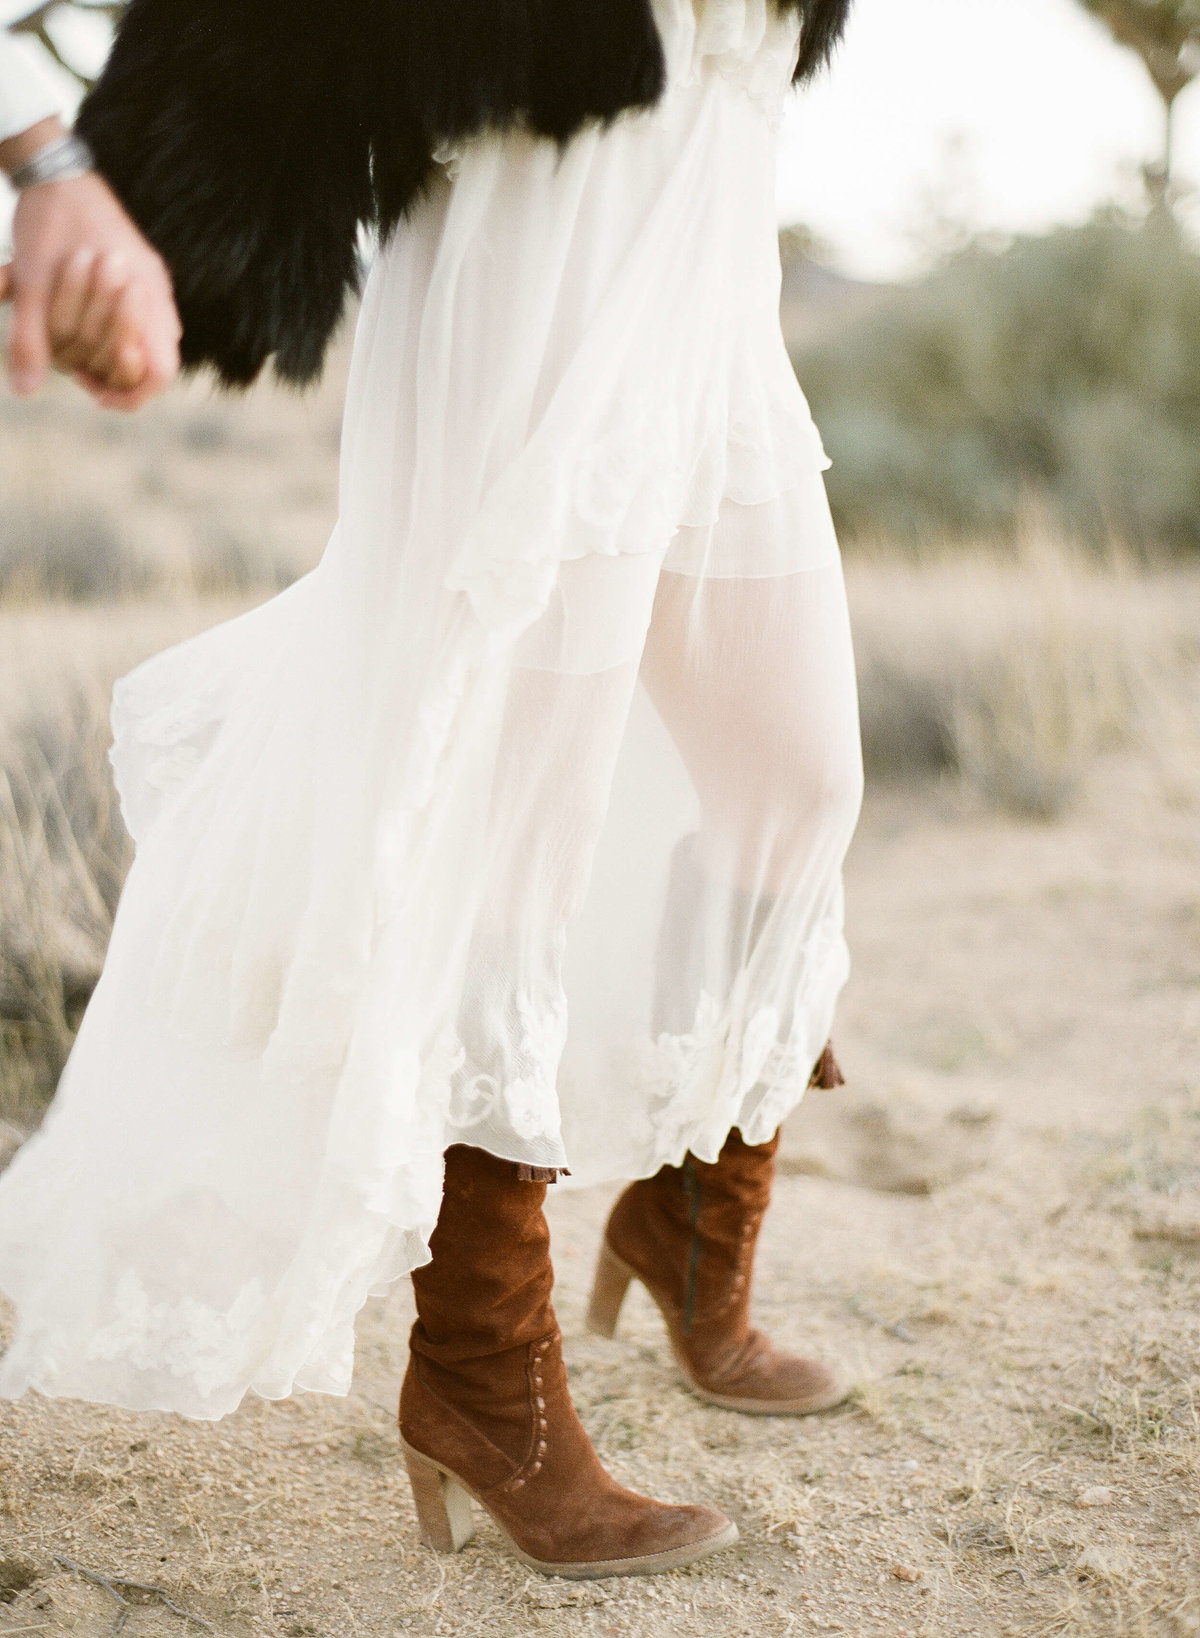 28-KTMerry-engagement-photography-chloe-fashion-Joshua-Tree